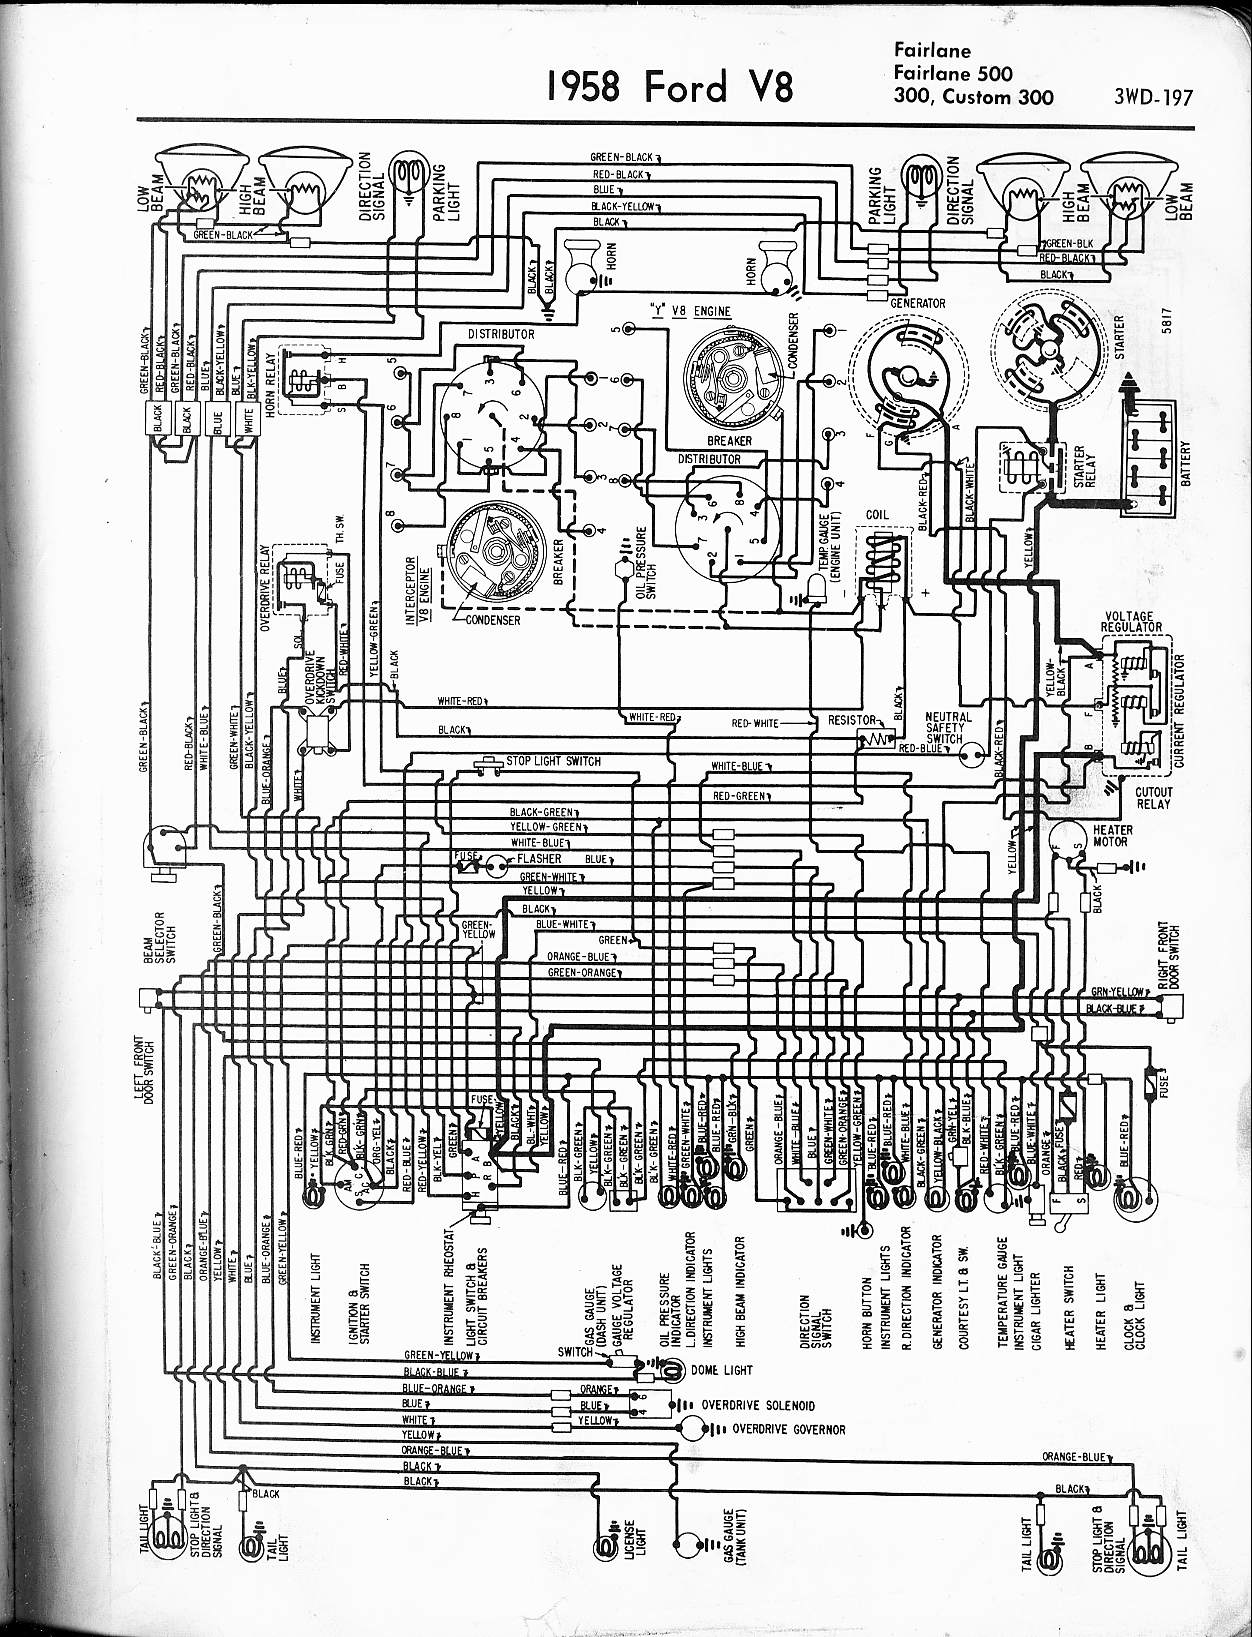 MWire5765 197 57 65 ford wiring diagrams 1966 ford truck wiring diagram at nearapp.co